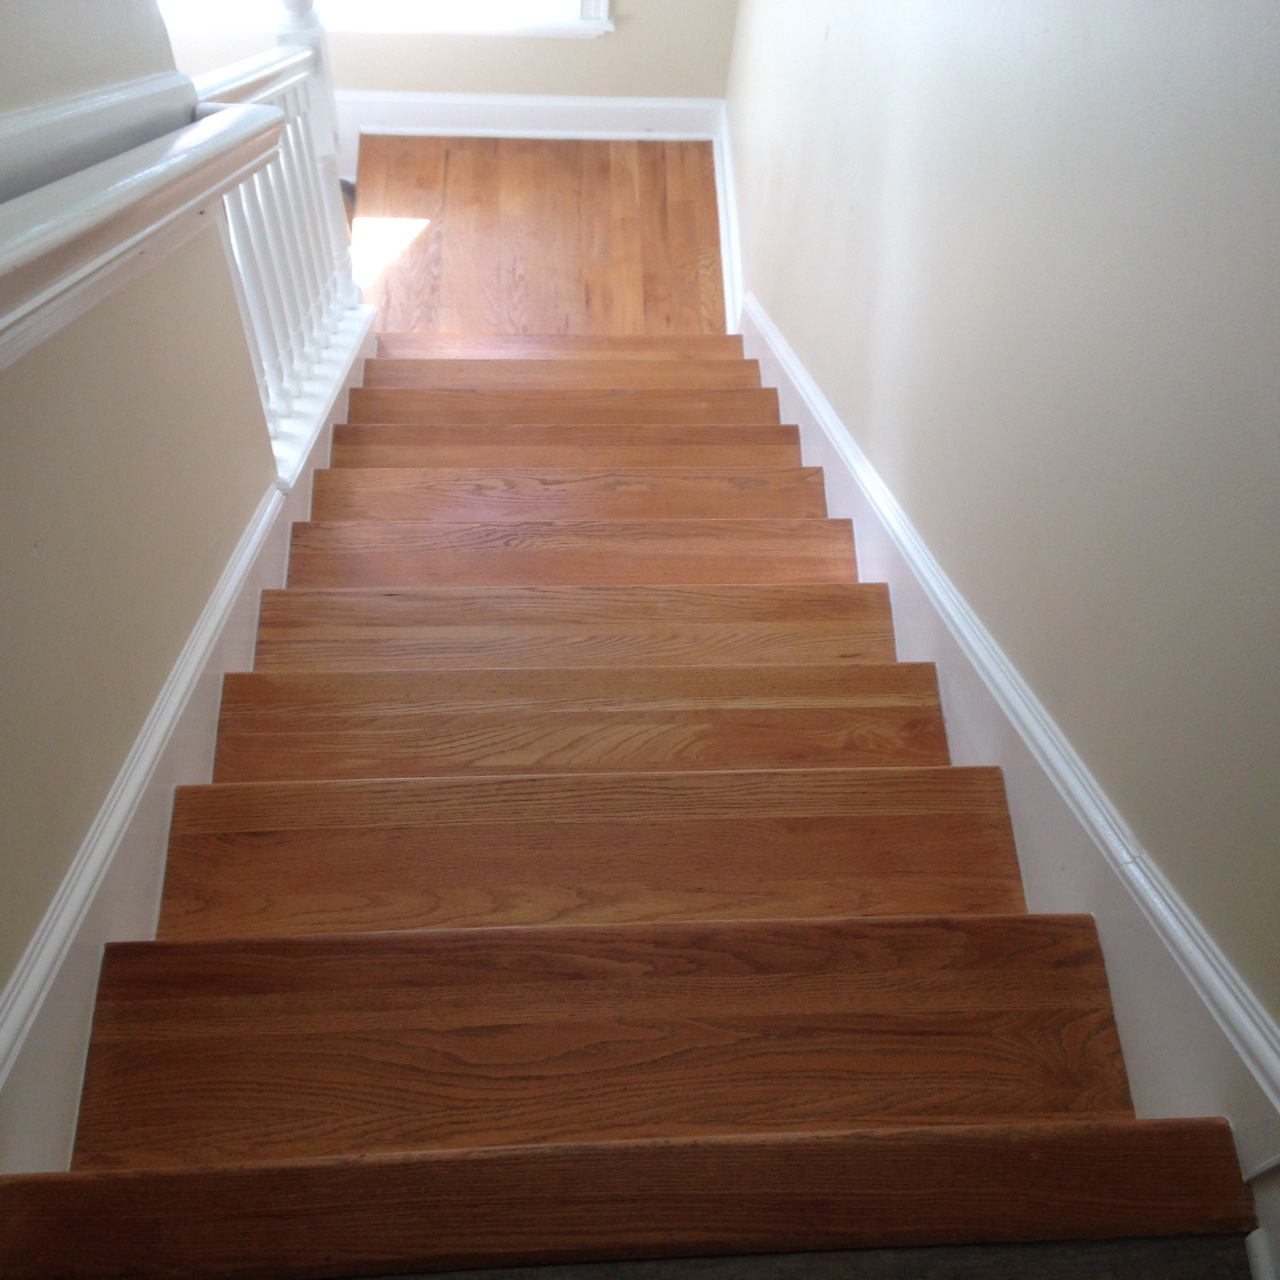 View from the top of wood stairs and landing to be refinished by sanding  and staining - Wood Floor Repair, Sand And Stain In Ponte Vedra FL